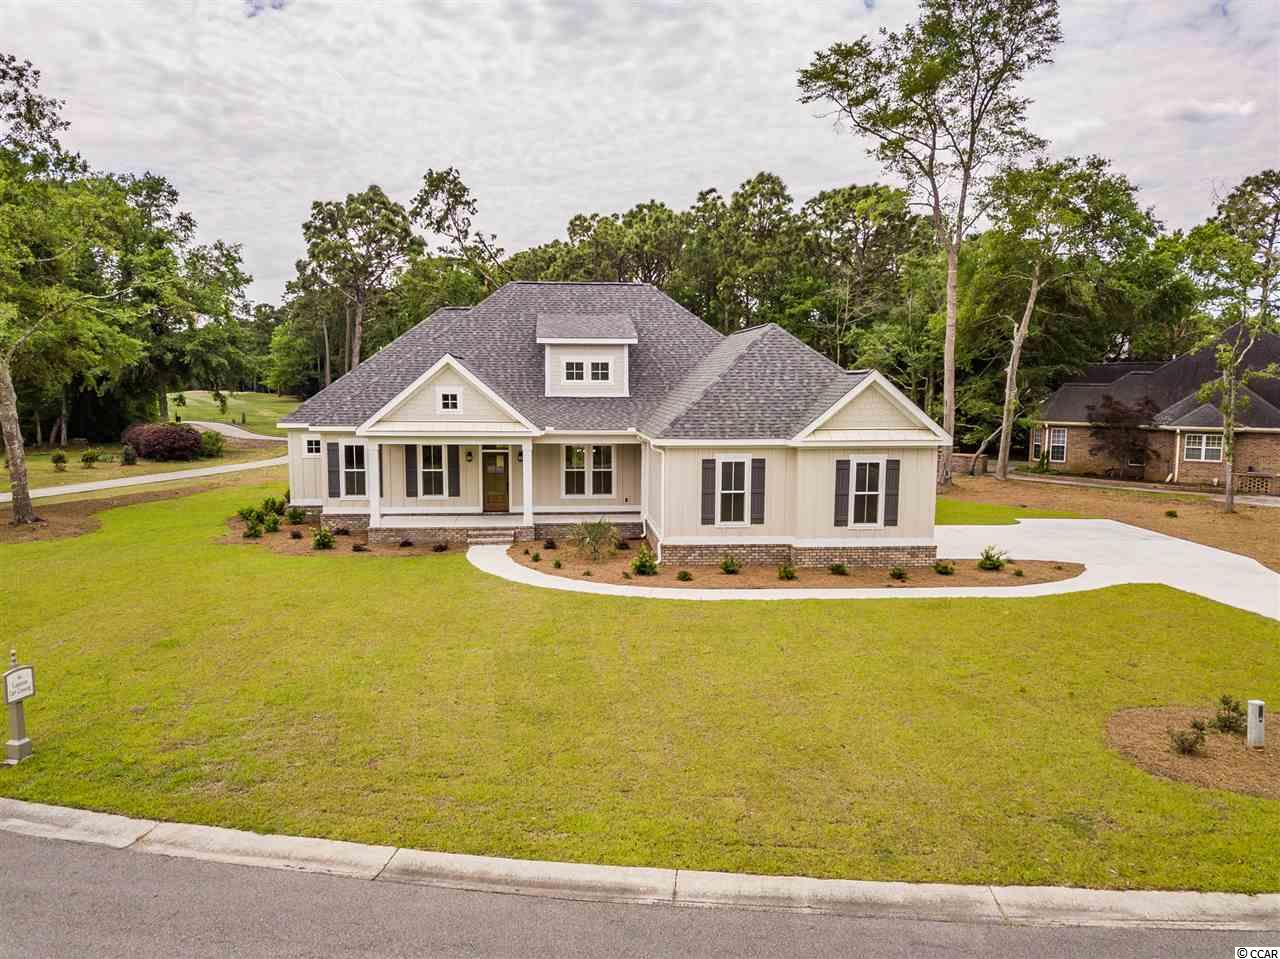 461 Savannah Dr., Pawleys Island, South Carolina